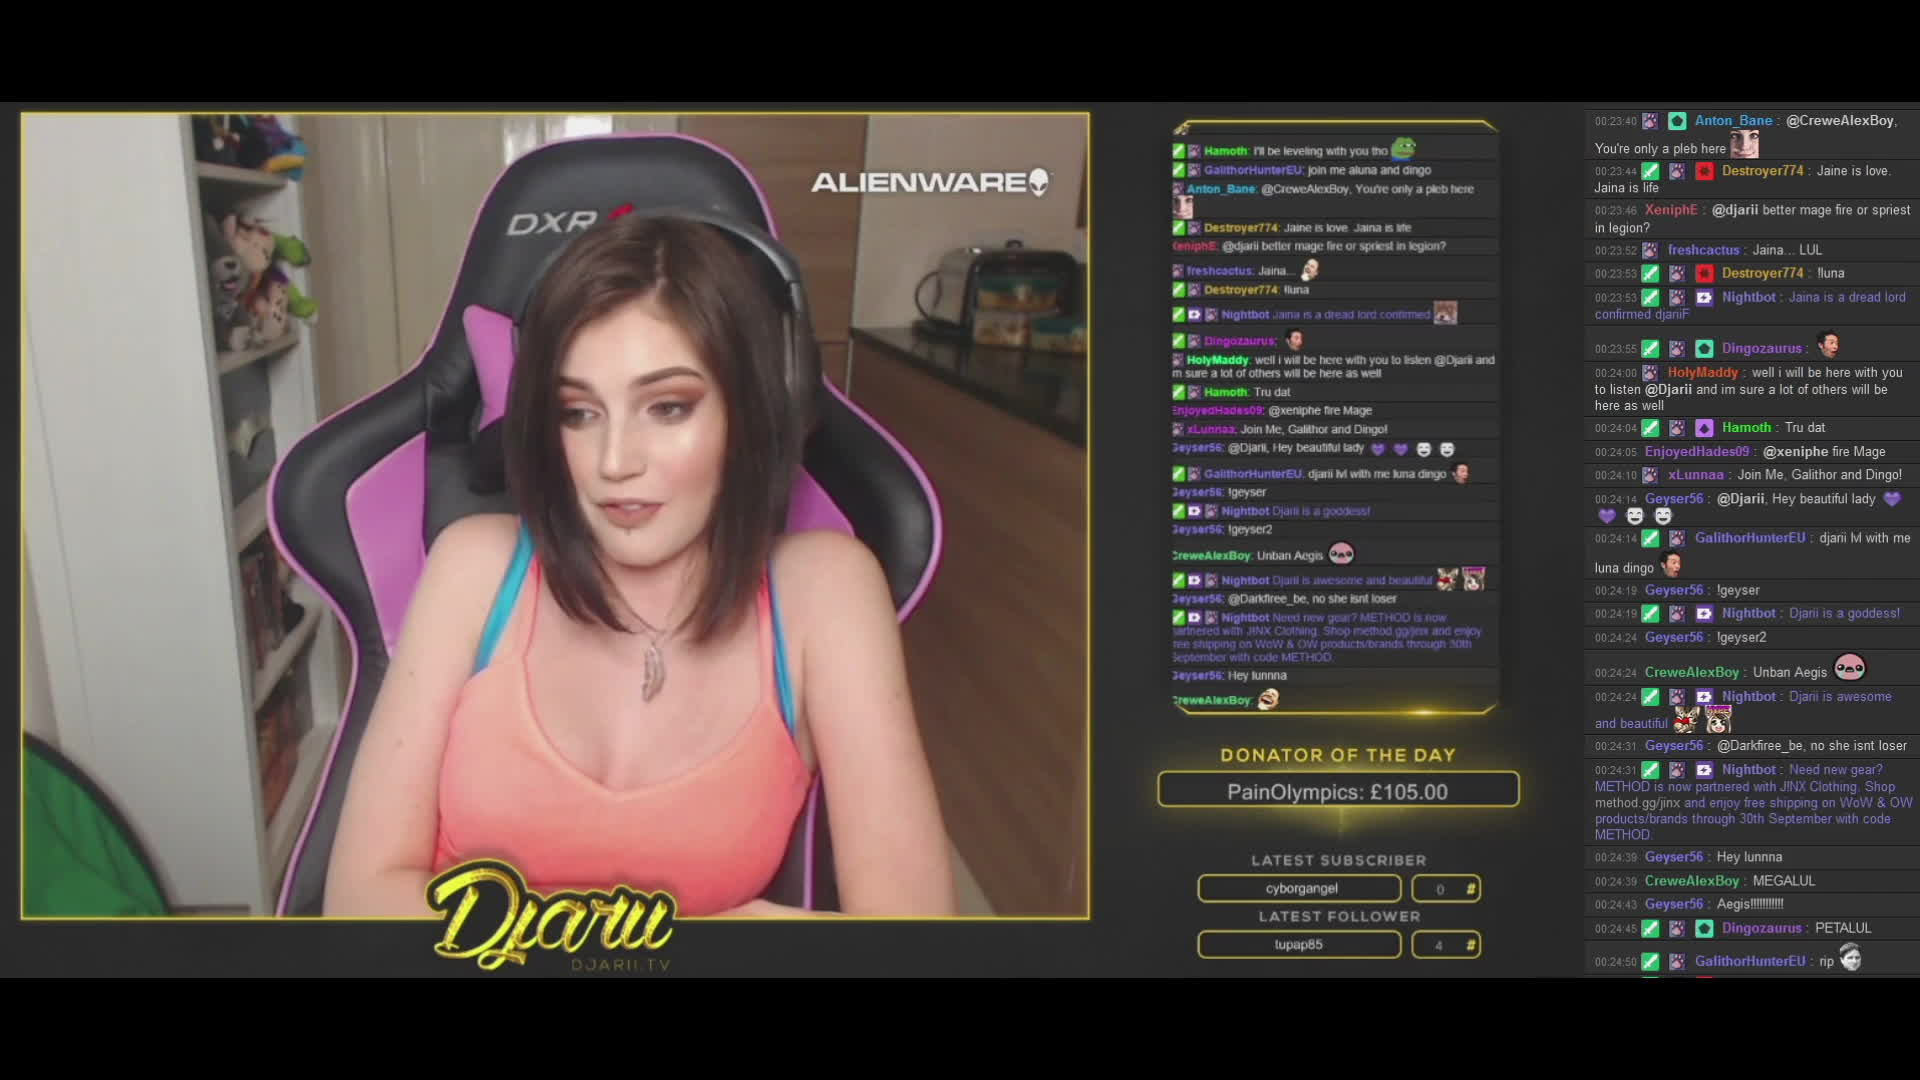 Anyone got a twitch clip of this by Djarii?